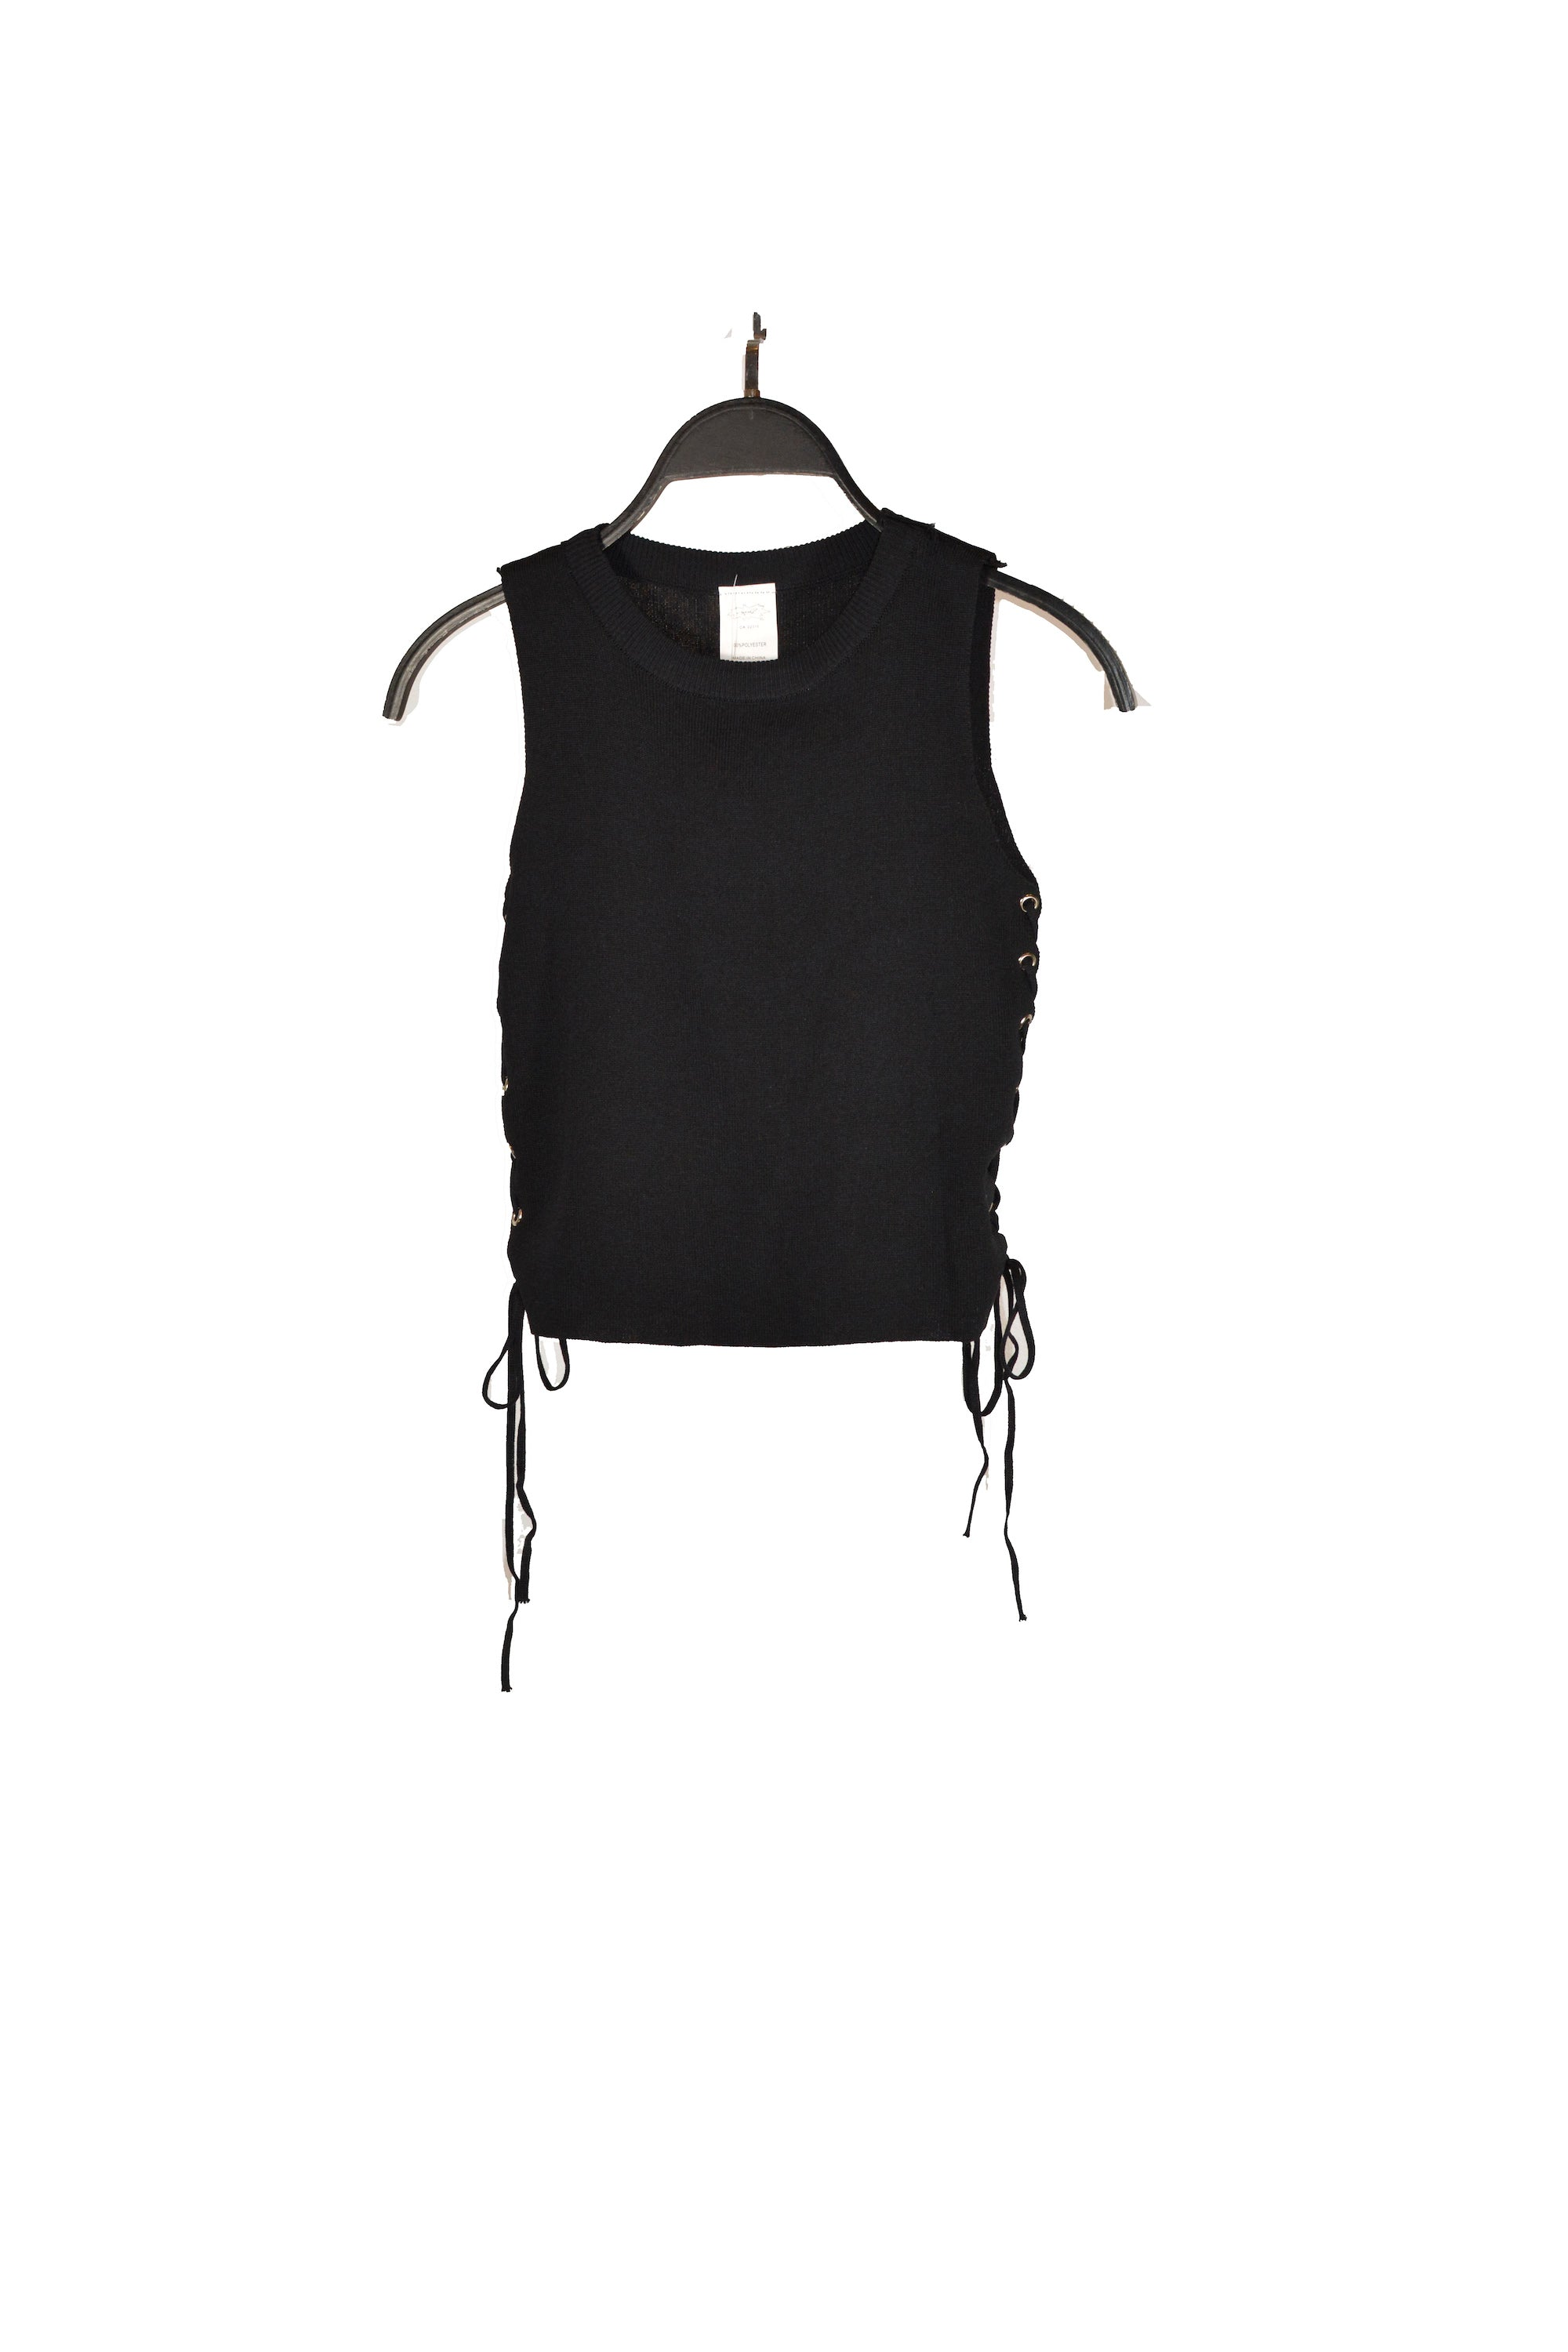 Black Sleeveless Side Lace-Up Tank Top With Round Neck and cropped length